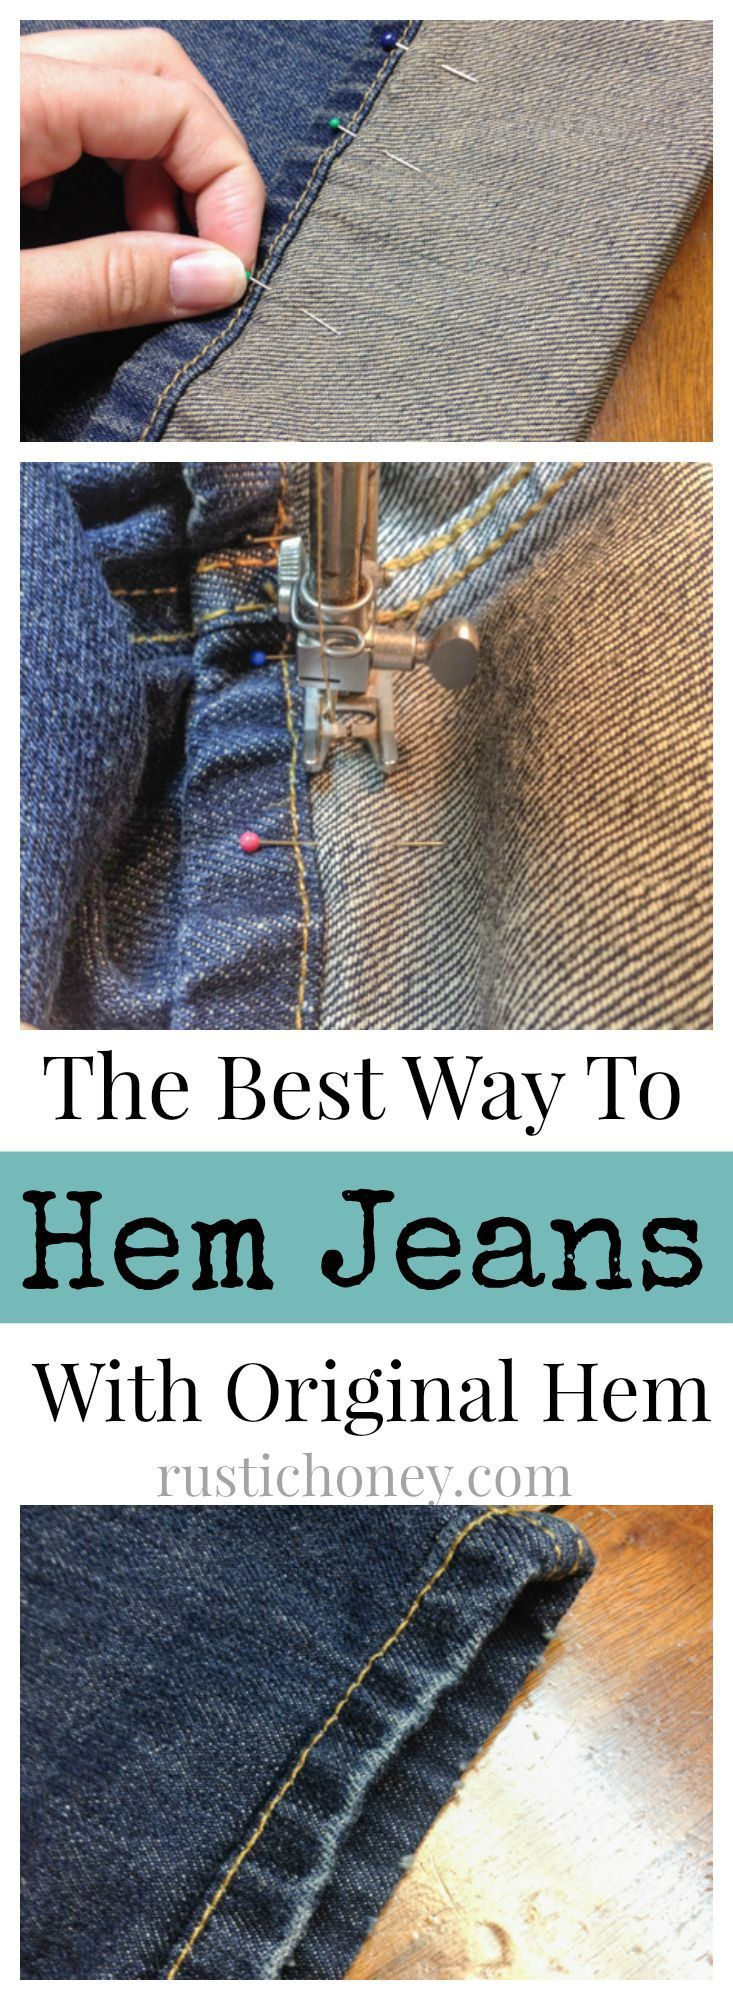 Hem Jeans Like A Pro! I had no idea I was doing this wrong! The best way to hem your jeans without losing the detail of the bottom hem!